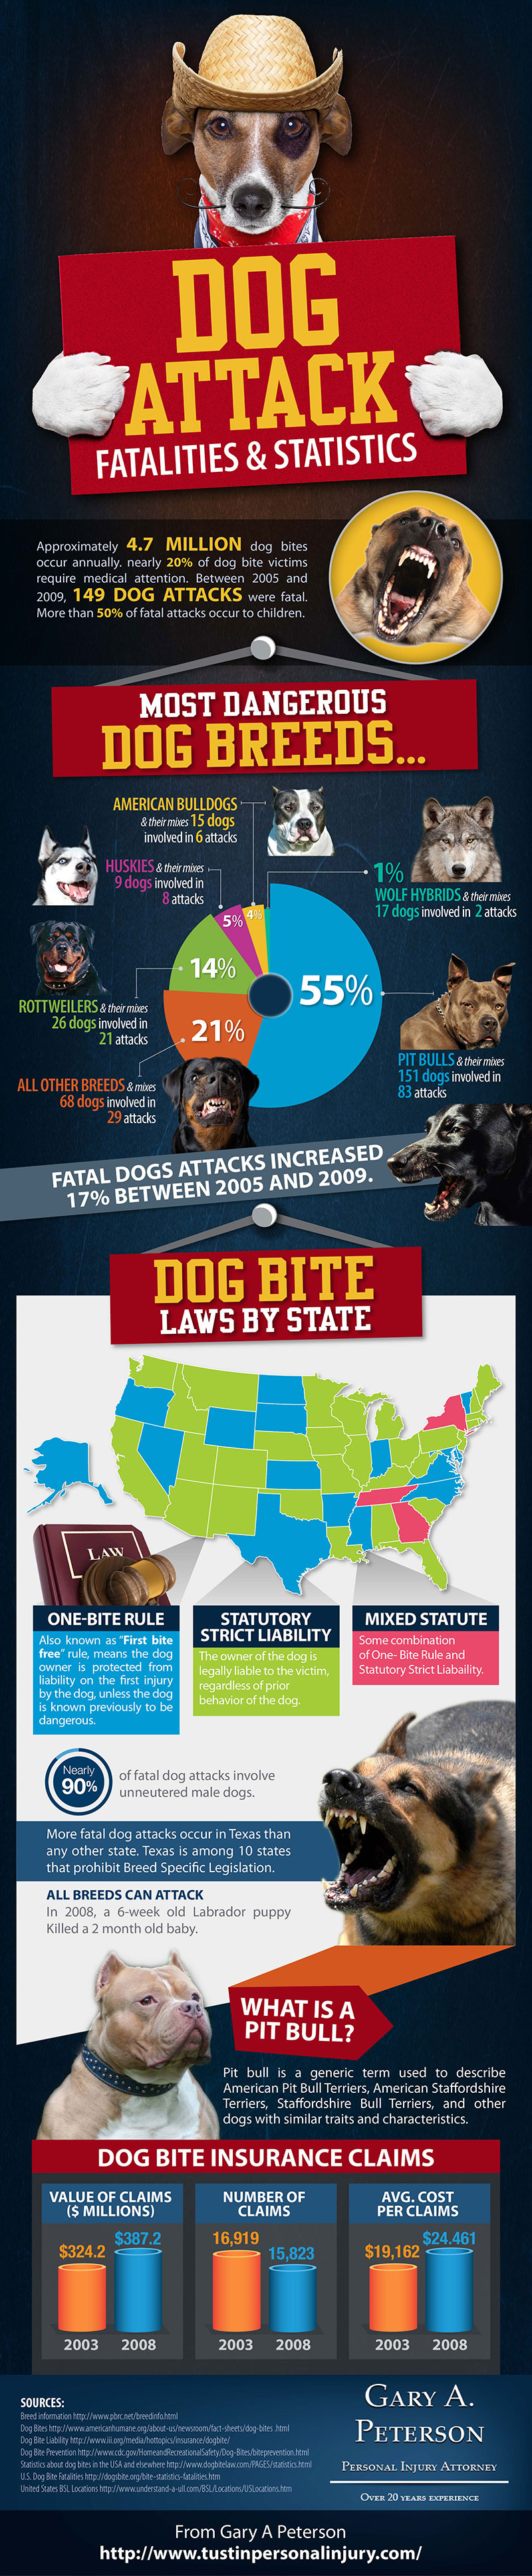 Dog-Attack-Fatalities-Statistics-Infographic-plaza